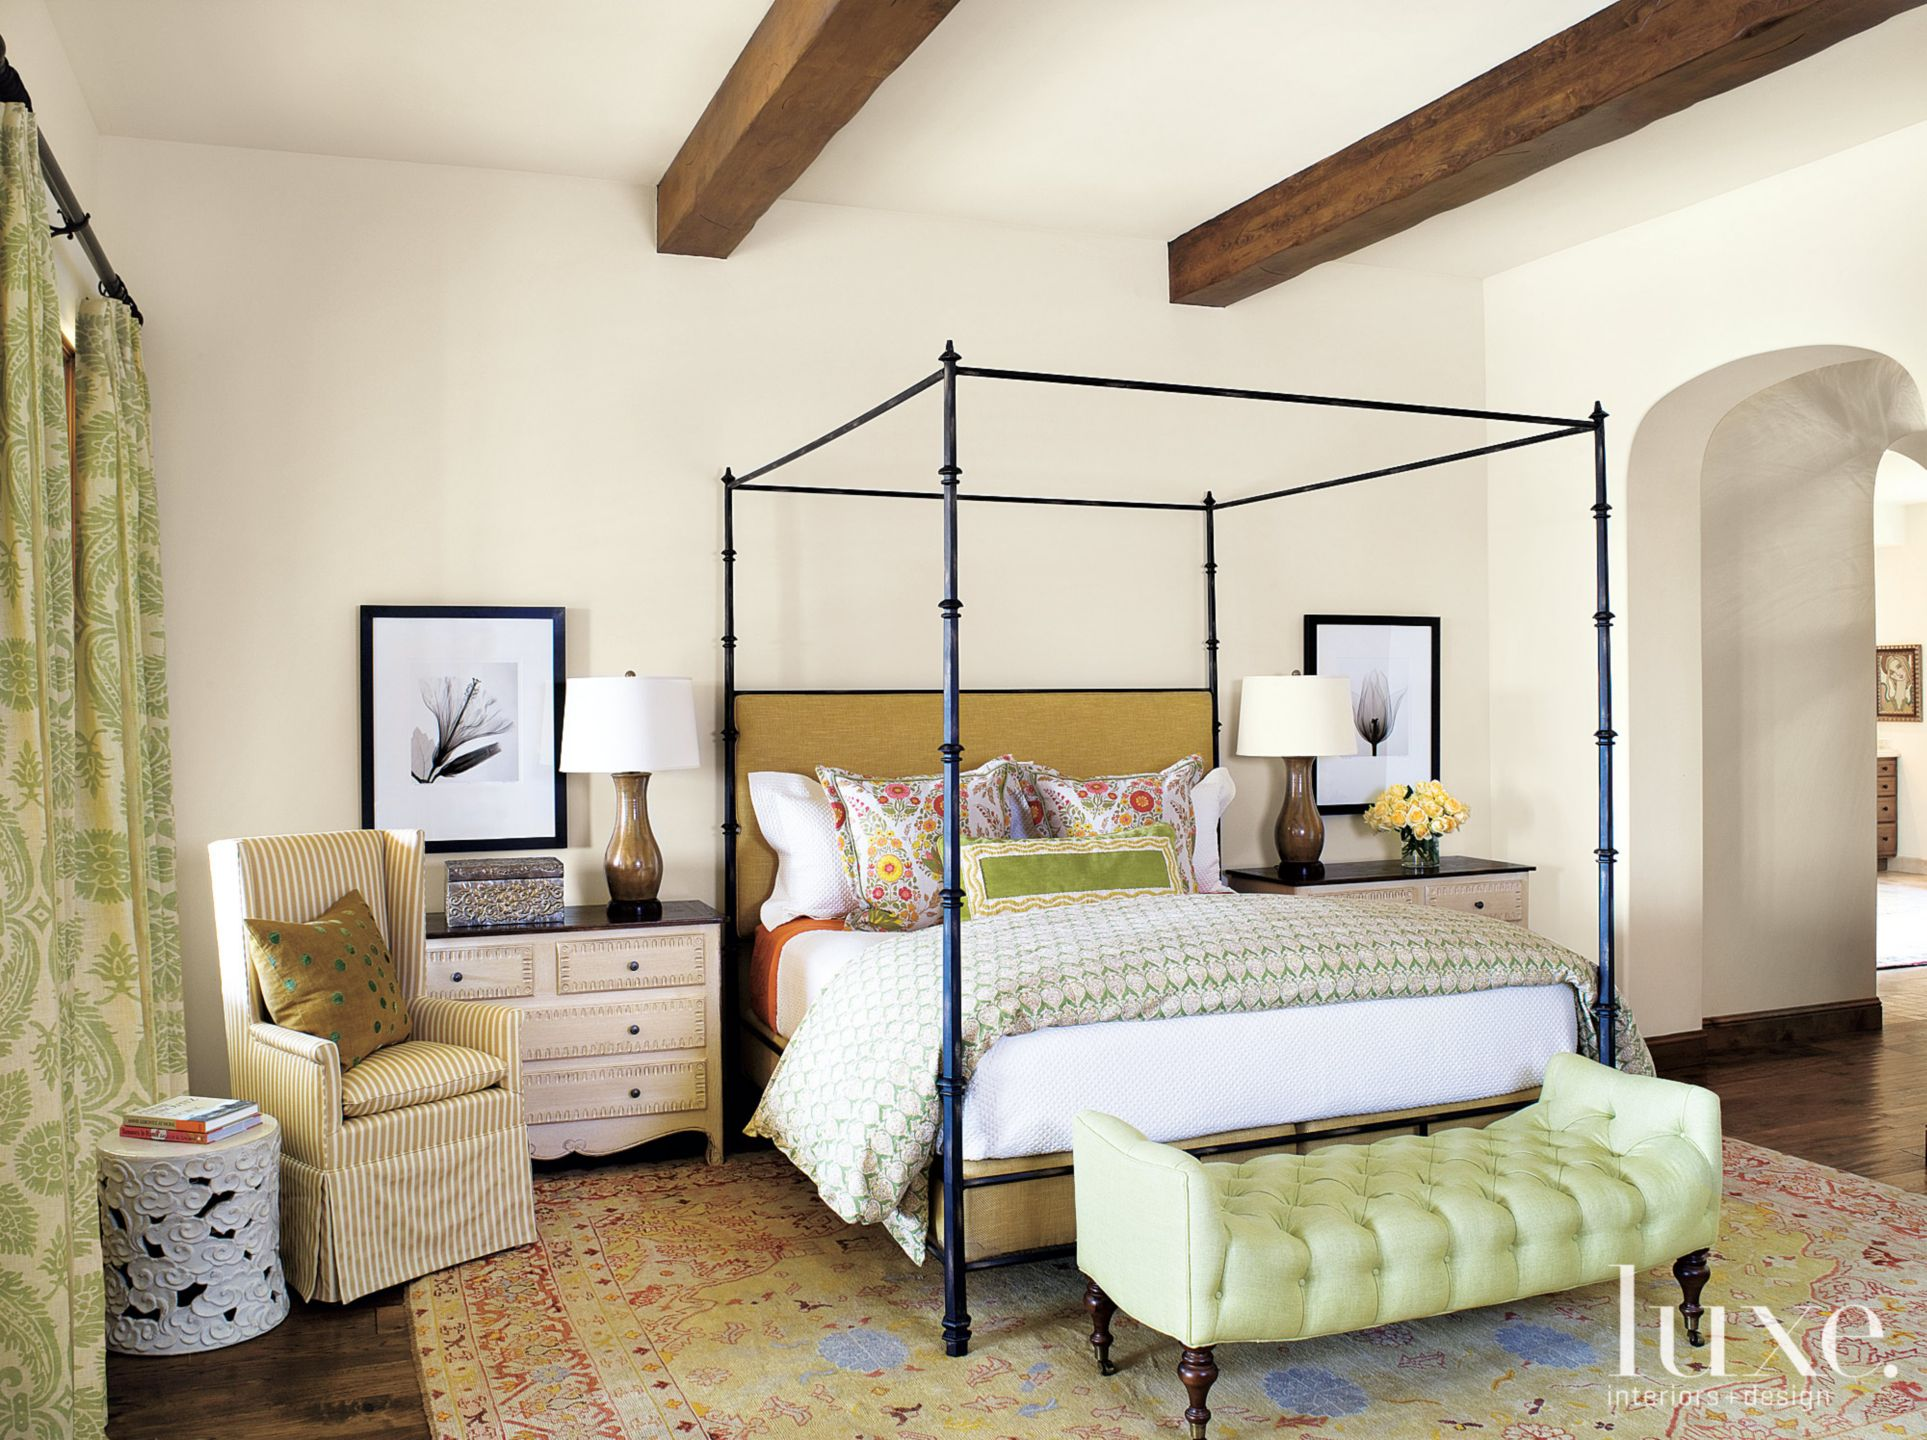 Eclectic White Bedroom with Tufted Green Bench